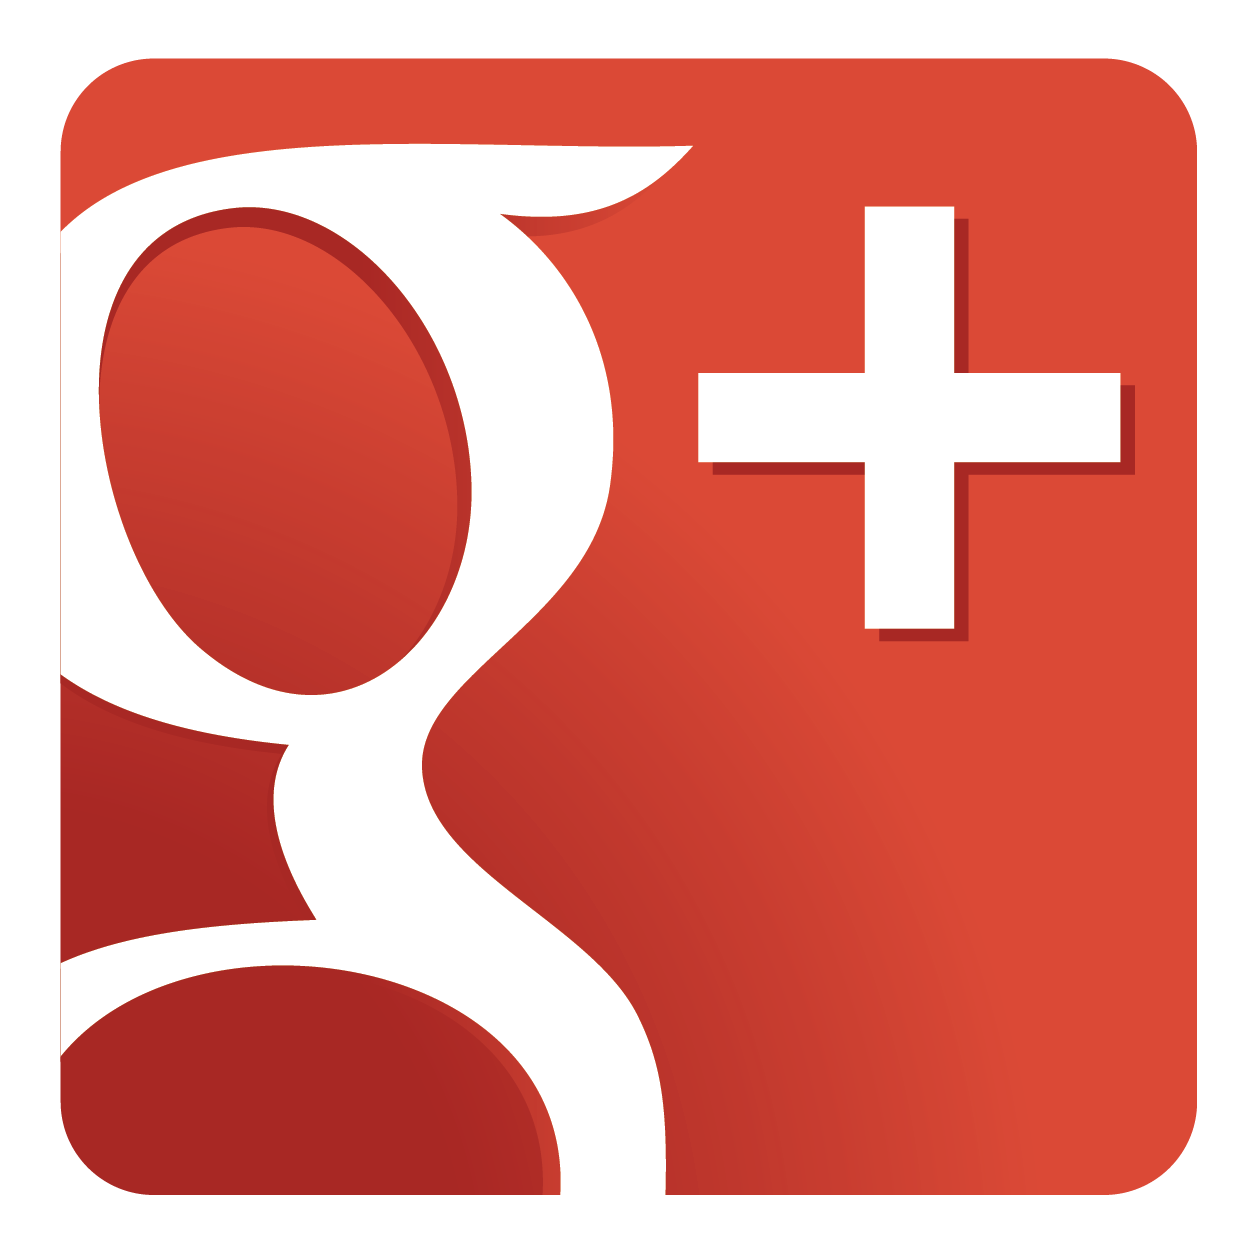 Google plus online dating